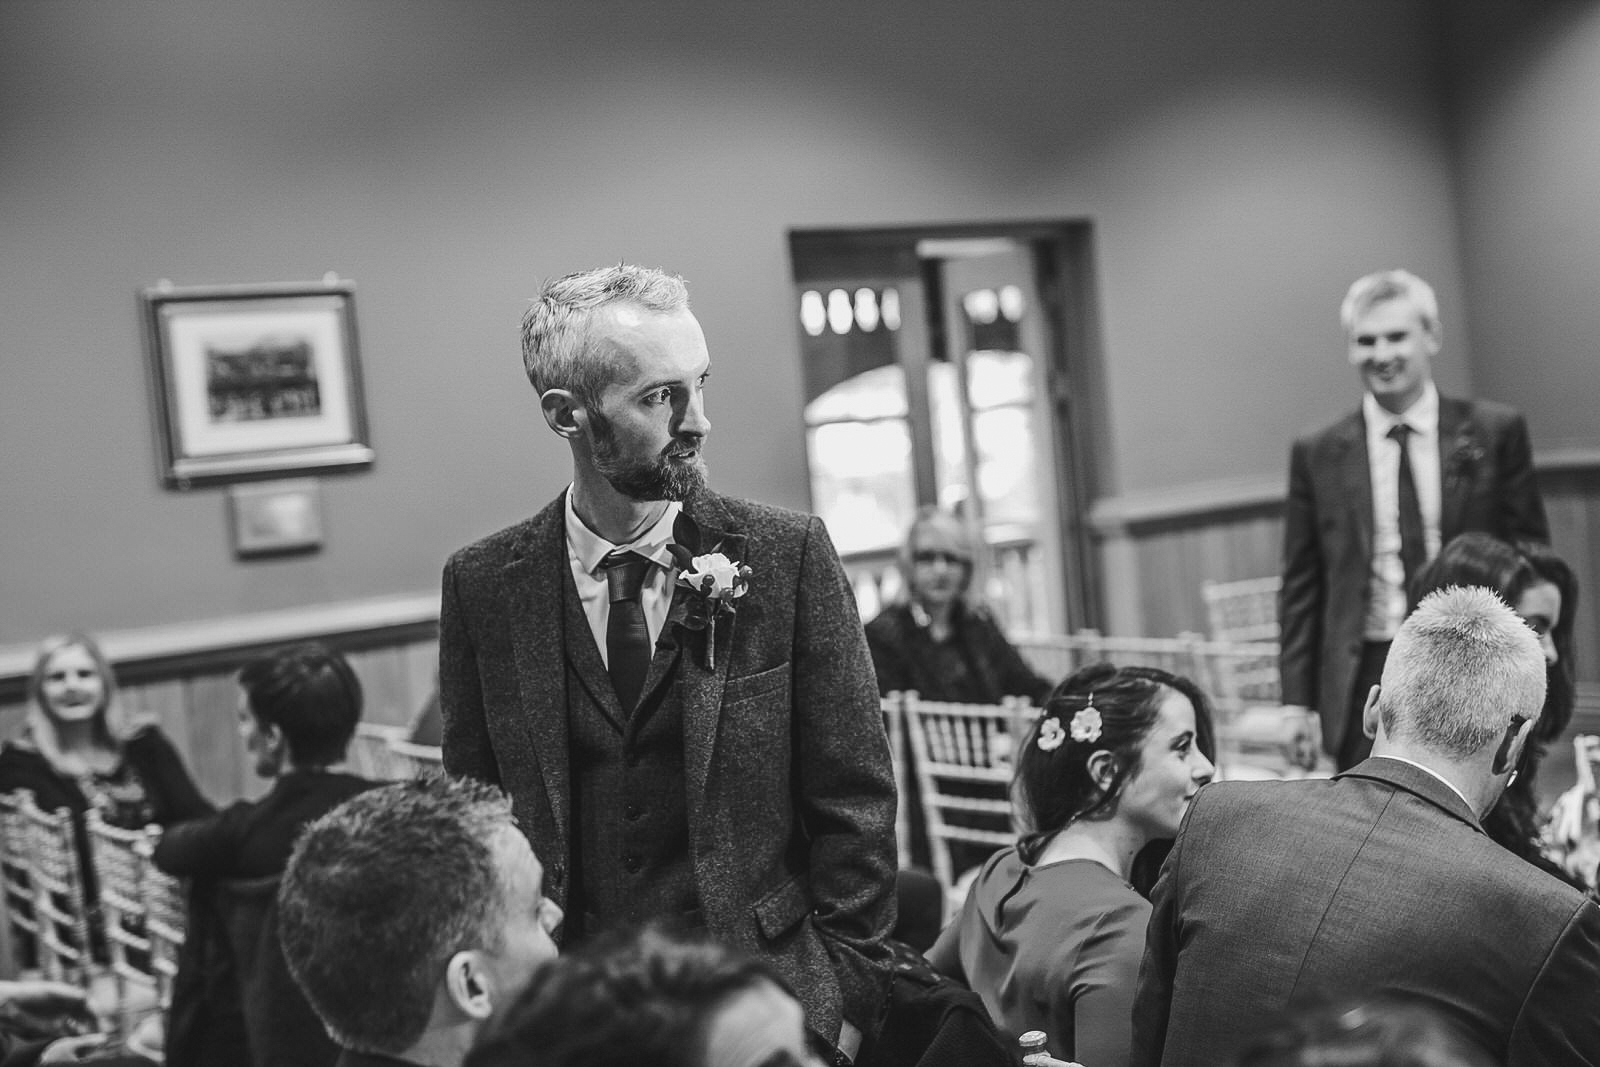 Roger_kenny-wedding-photographer-wicklow-dublin-zoo_018.jpg